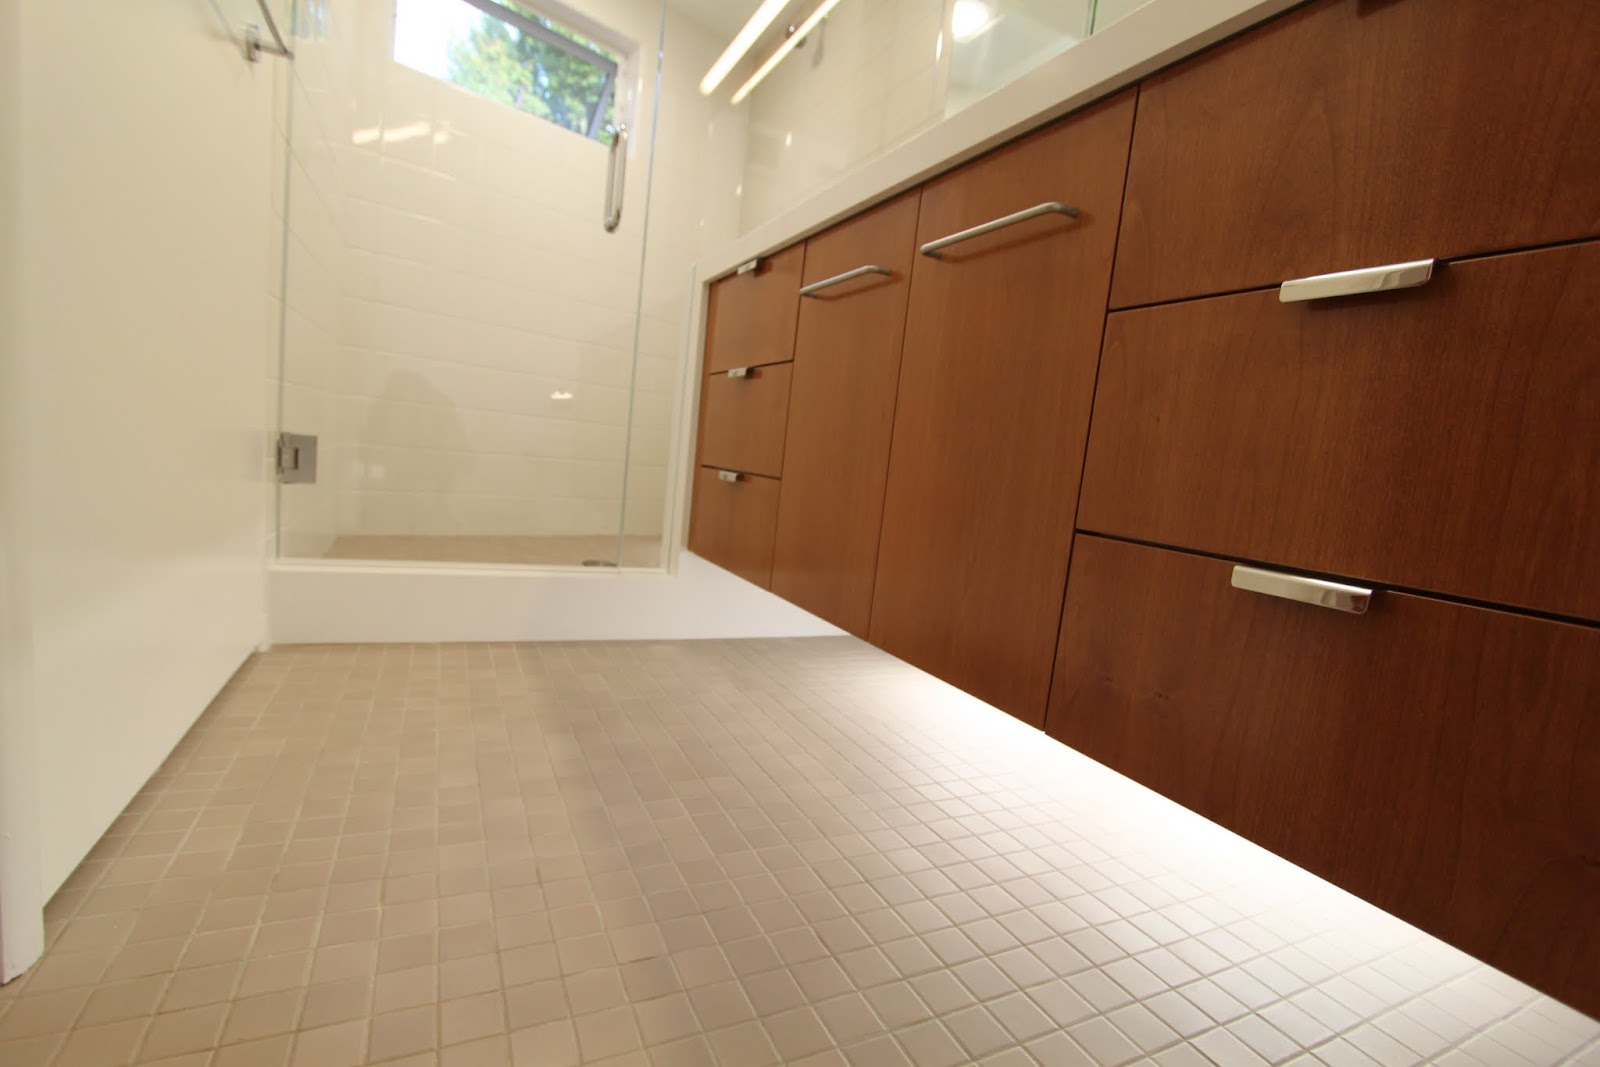 Top Five Favorite Features Mid Century Bathroom Remodel: mid century modern flooring